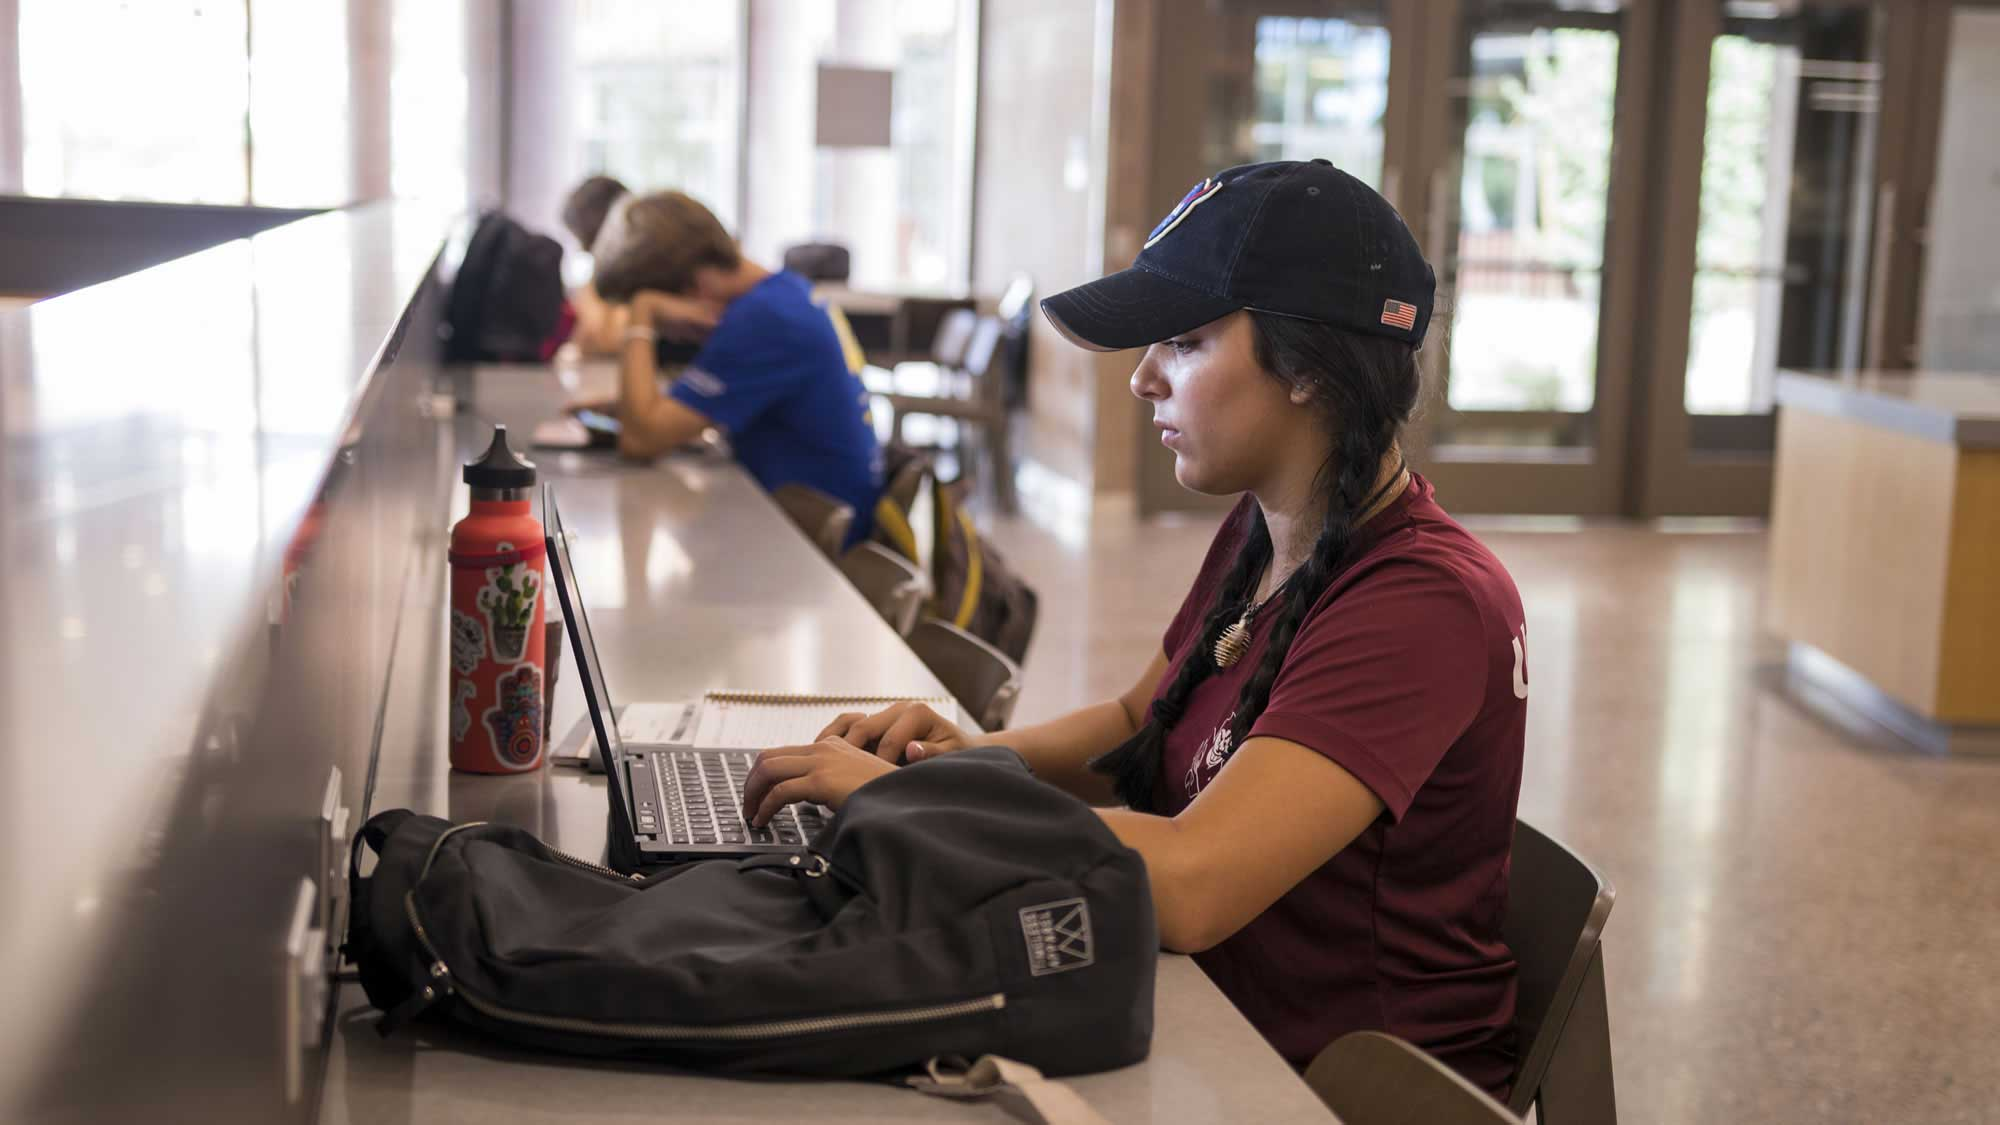 A young woman sits with her laptop, studying at the Tooker House common area